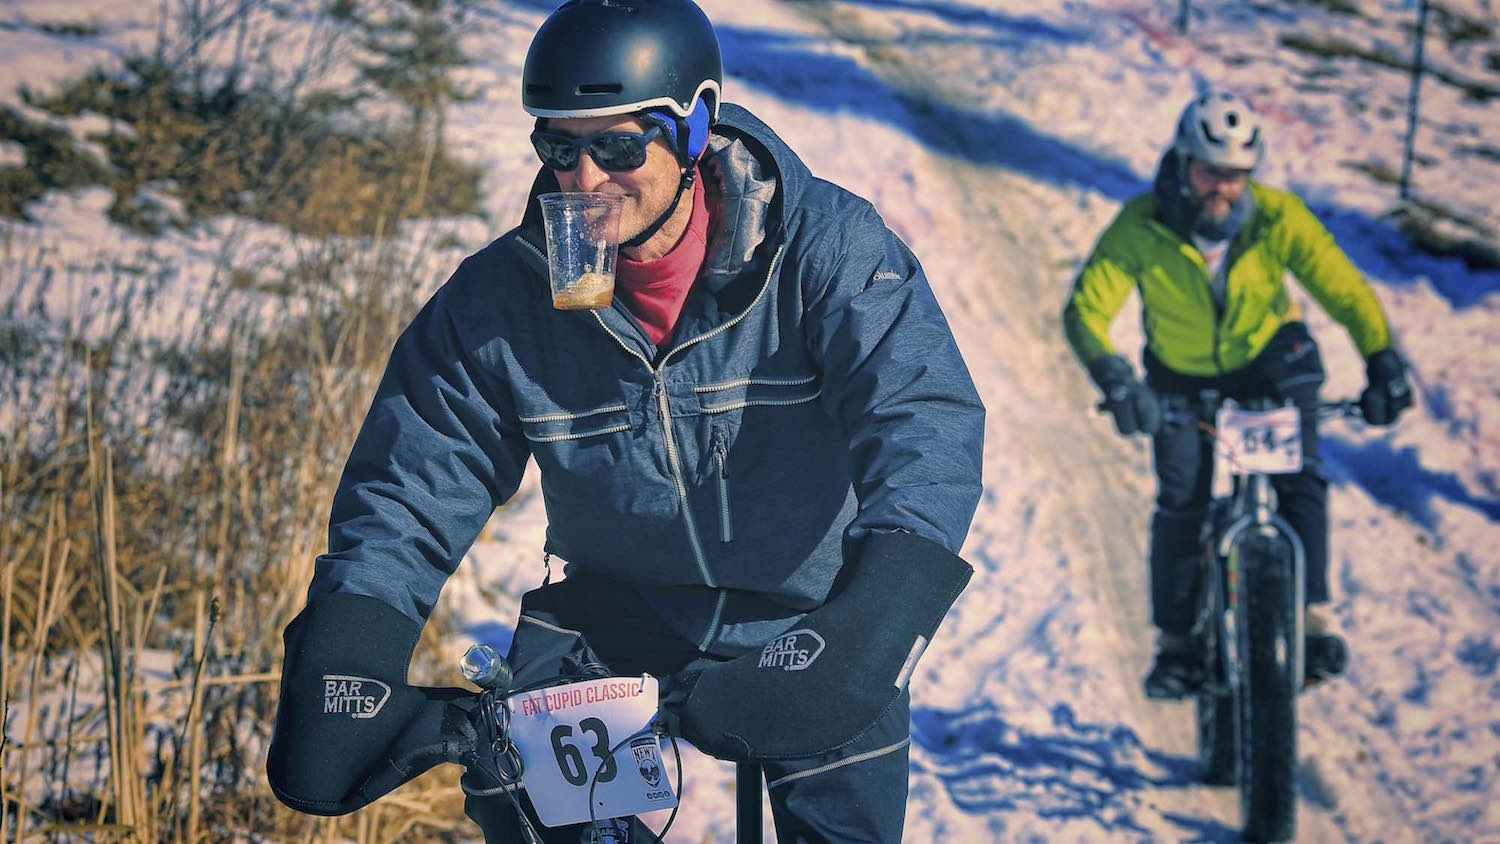 A fat bike rider holds his beer in his teeth after a fast descent during the Fat Cupid Classic.